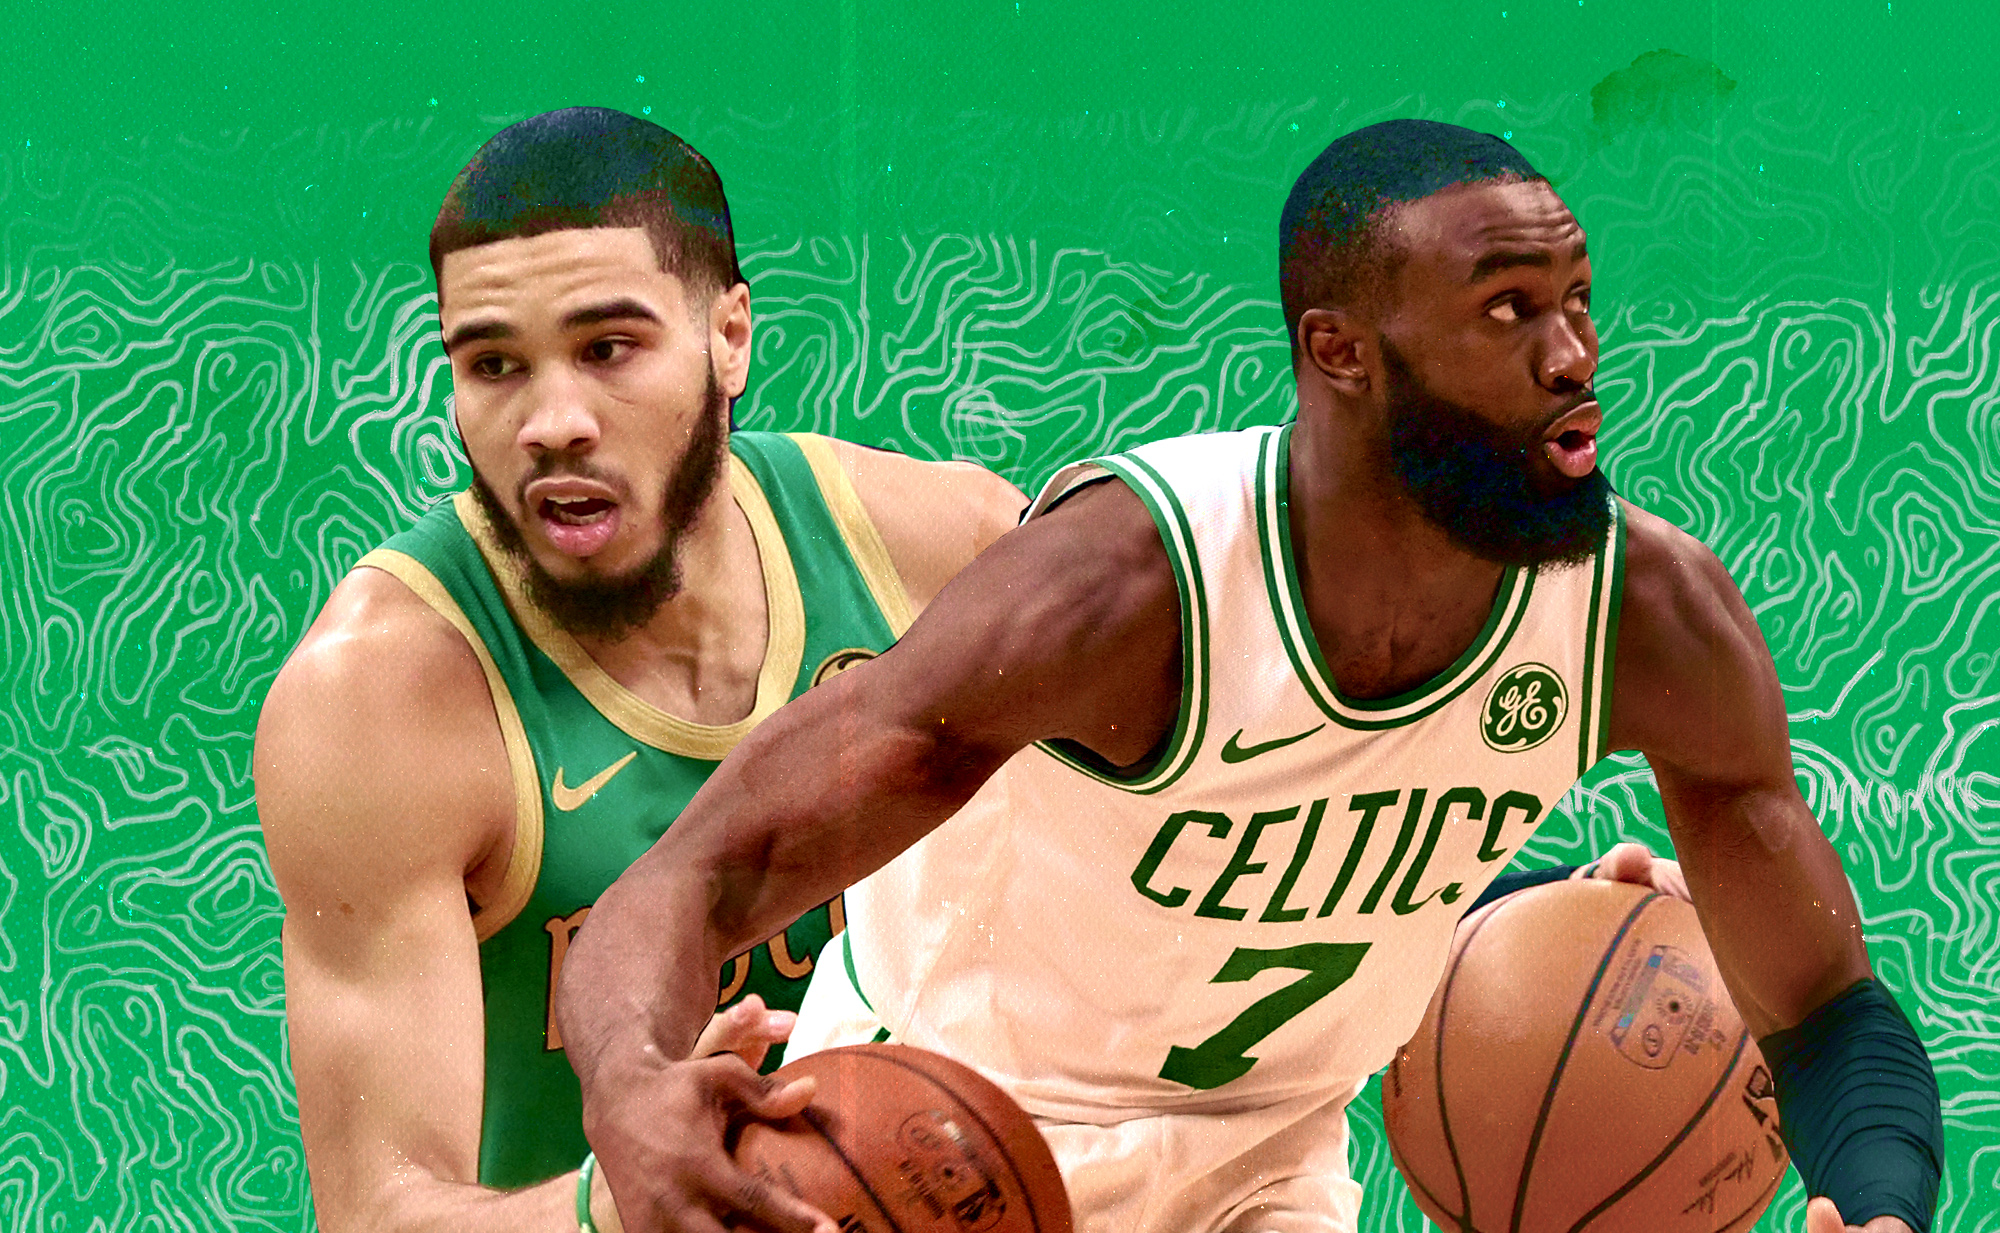 Jayson Tatum (left) and Jaylen Brown (right) in a collage.